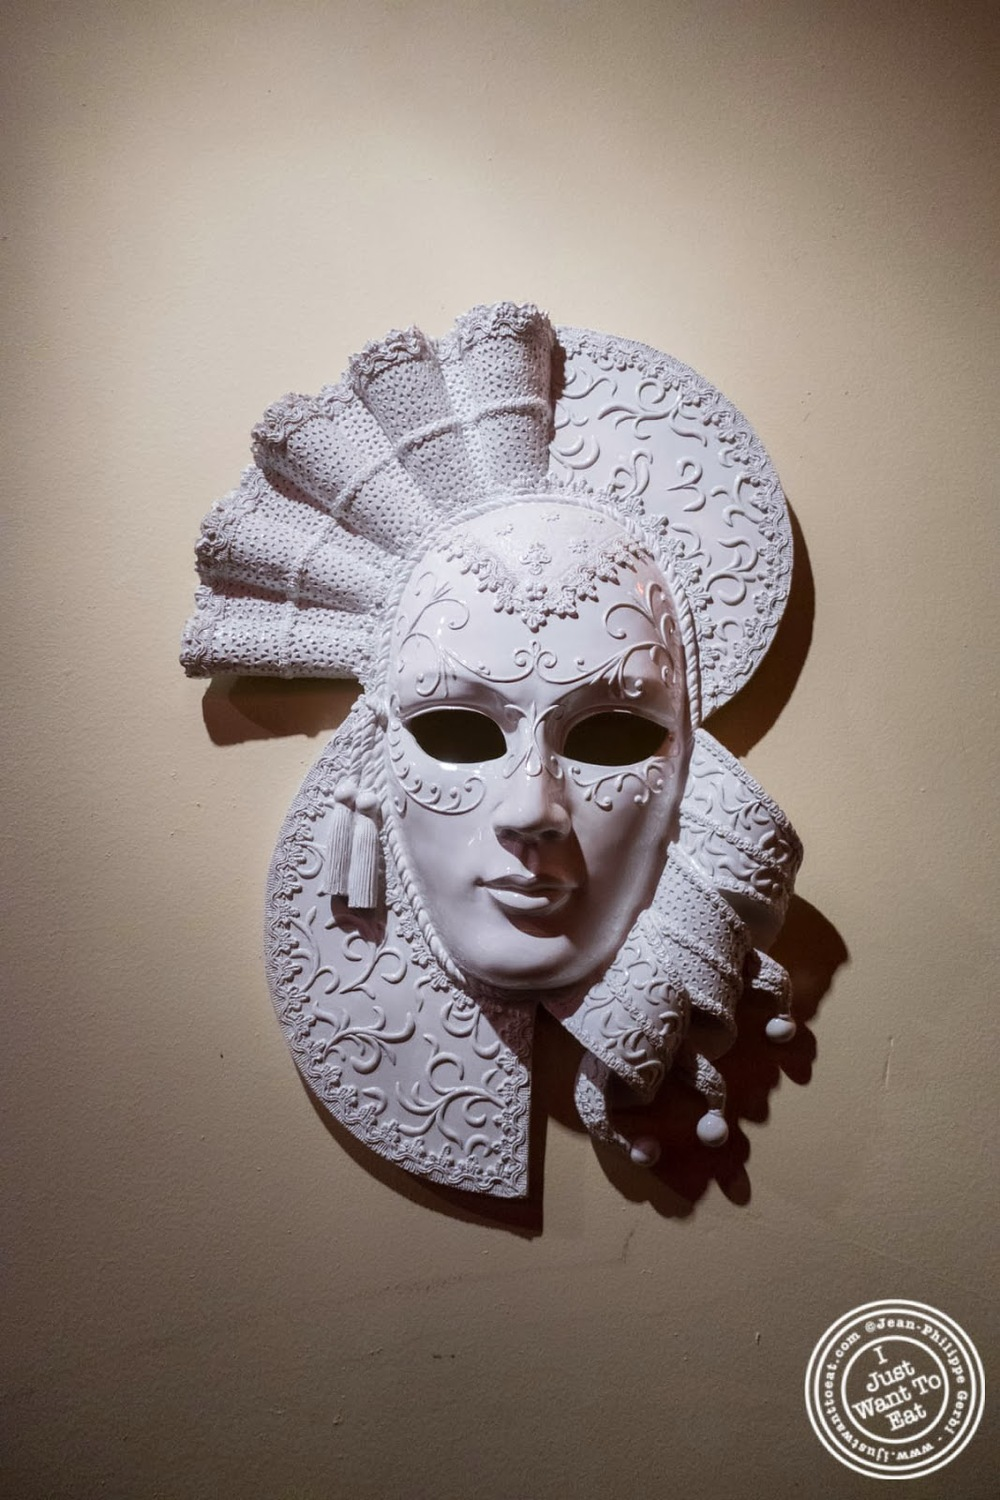 image of Mardi gras mask at MASQ New Orleans inspired cuisine in NYC, New York